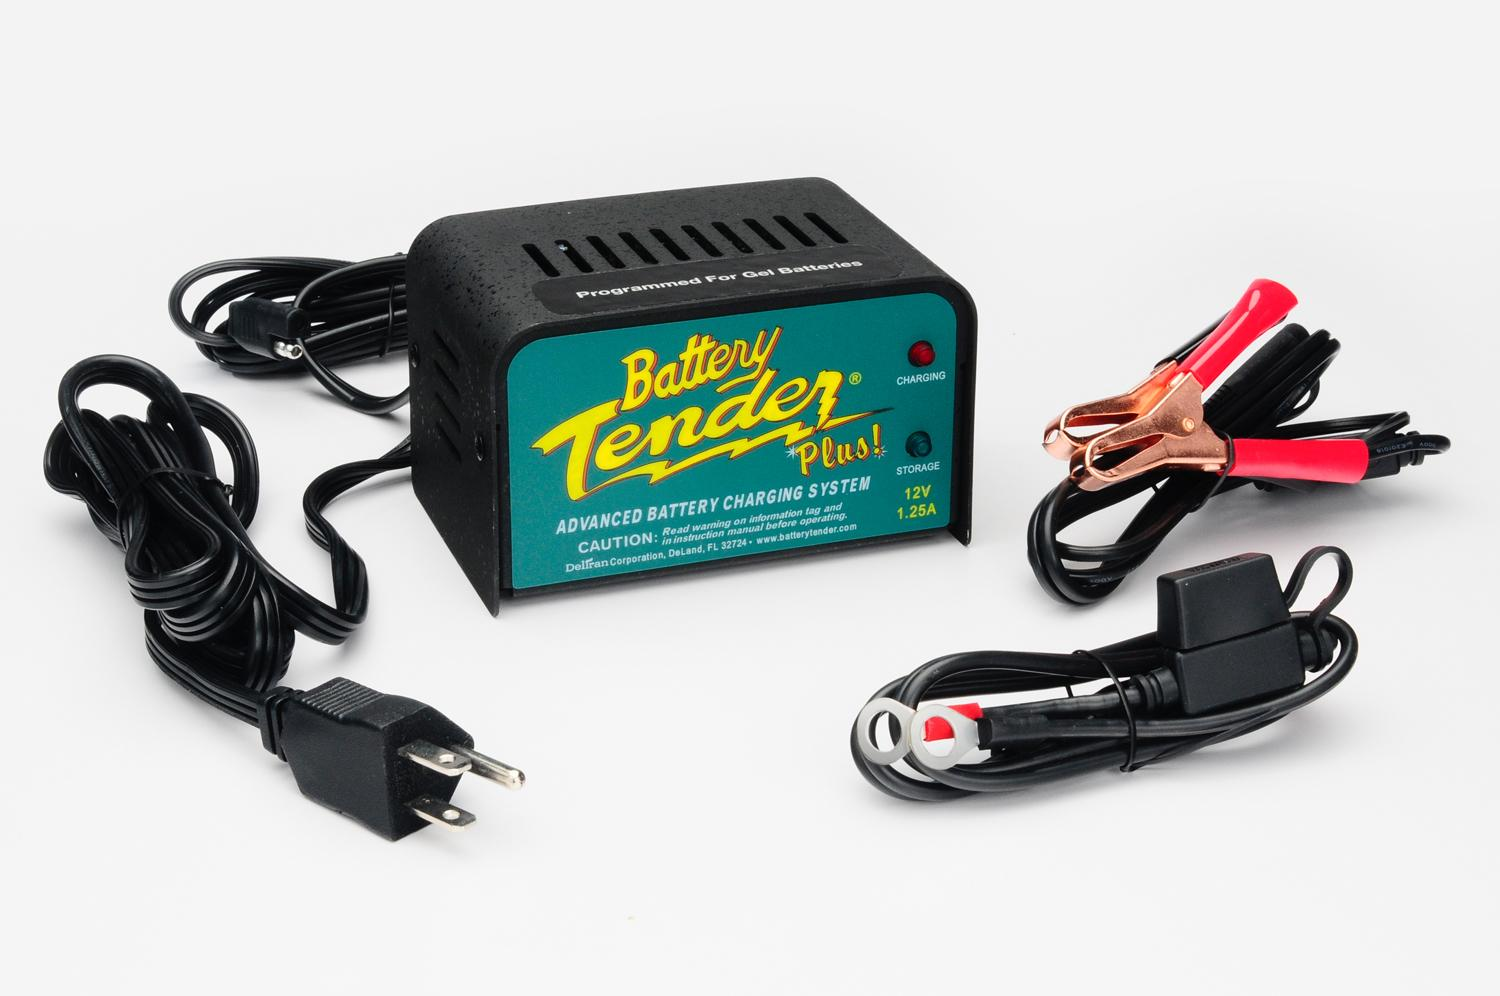 Deltran Super Smart Battery Tender Plus 12V - 1.25A